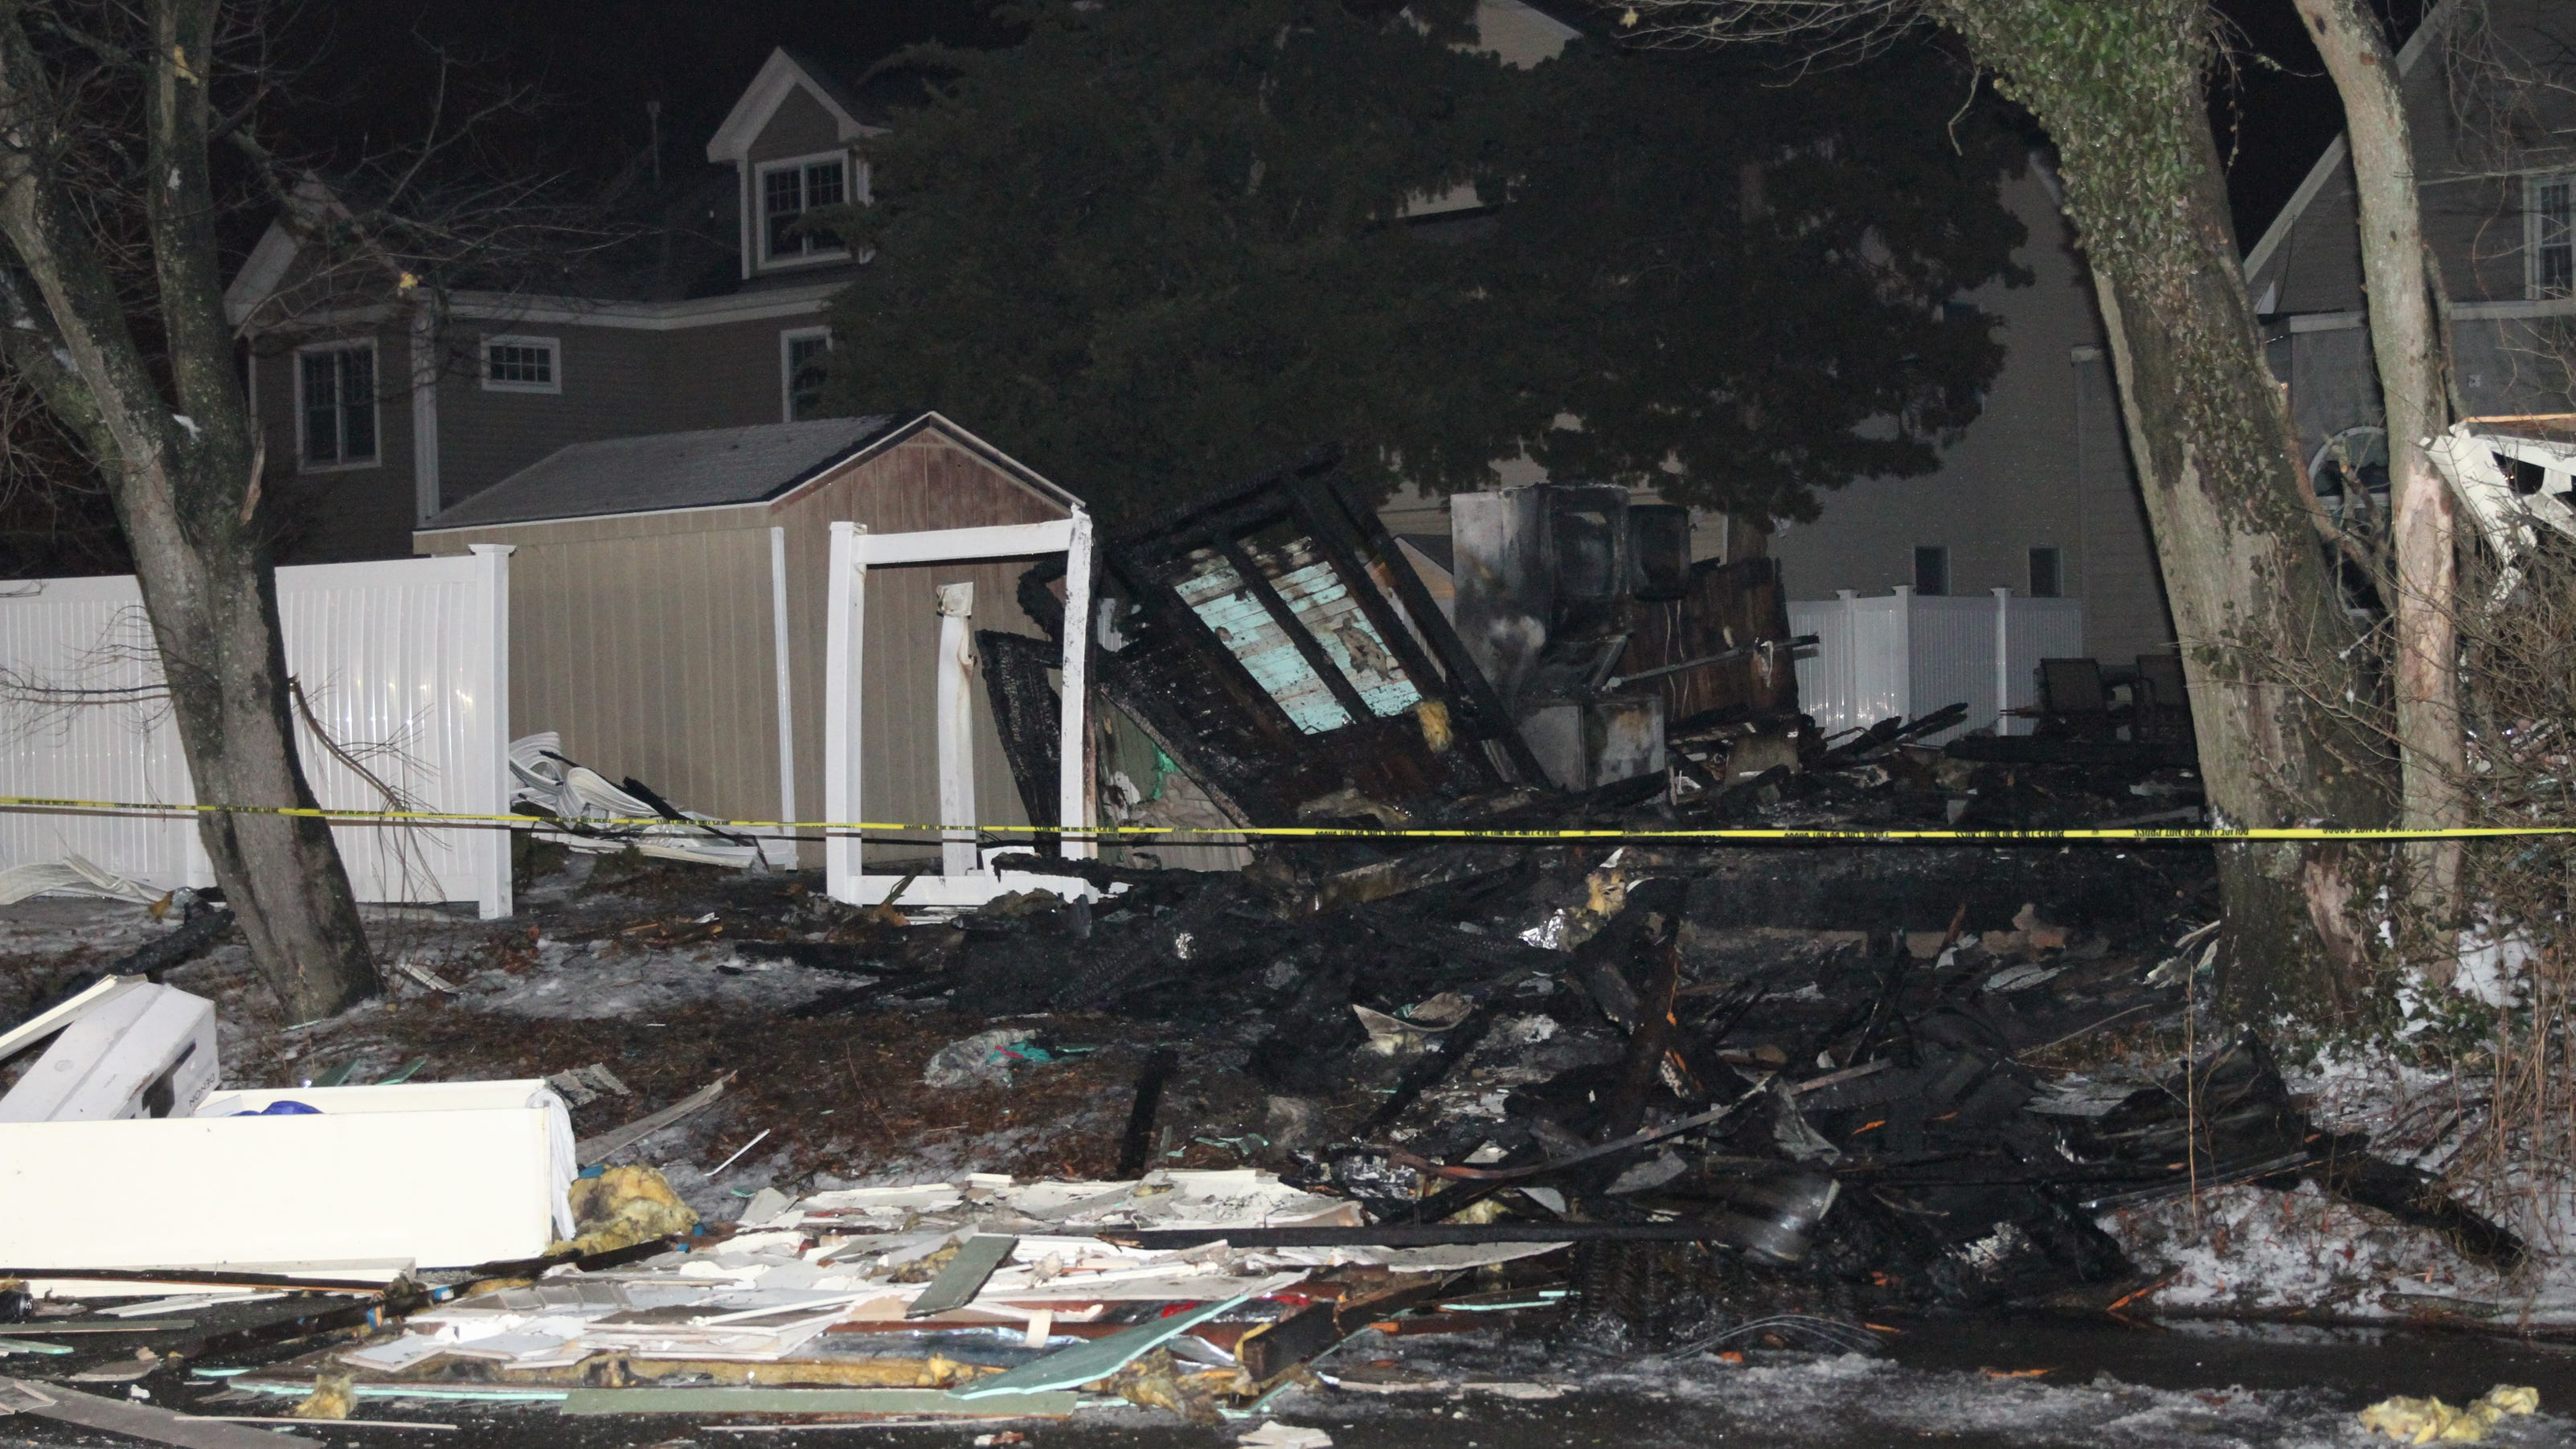 the day my house exploded A gas explosion rocked a new jersey neighborhood tuesday morning, blowing up a house, injuring 15 people, two of them critically, and forcing at least 80 families from their homes, authorities say.